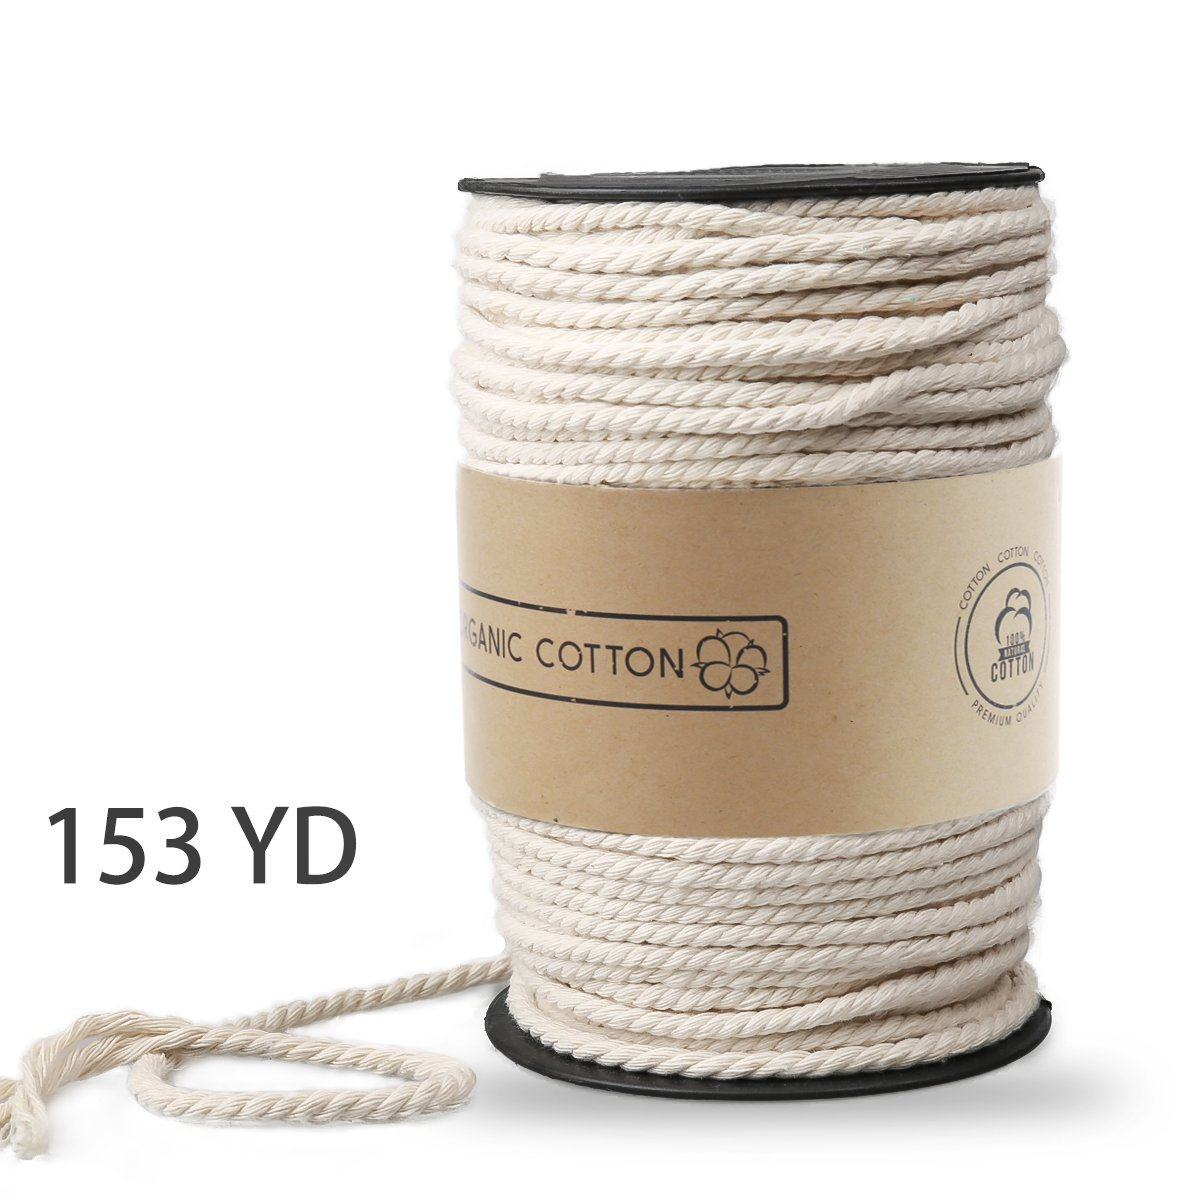 Macrame Cord, ZOUTOG 4mm x 140m (About 153 yd) Natural Cotton Soft Unstained Rope for Handmade Plant Hanger Wall Hanging Craft Making